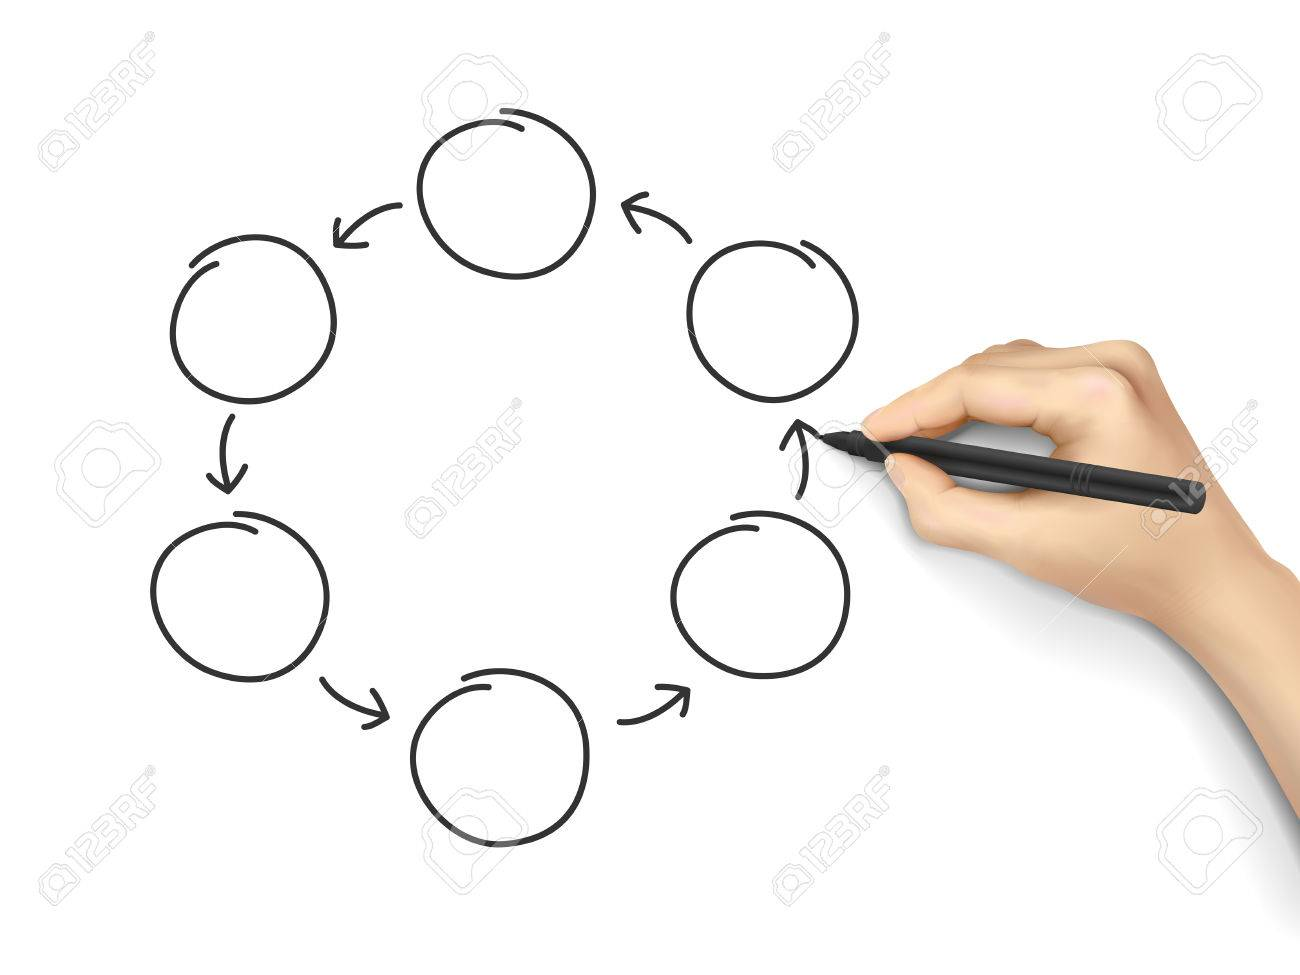 blank cycle diagram drawn by hand isolated on white background stock vector  - 36157870